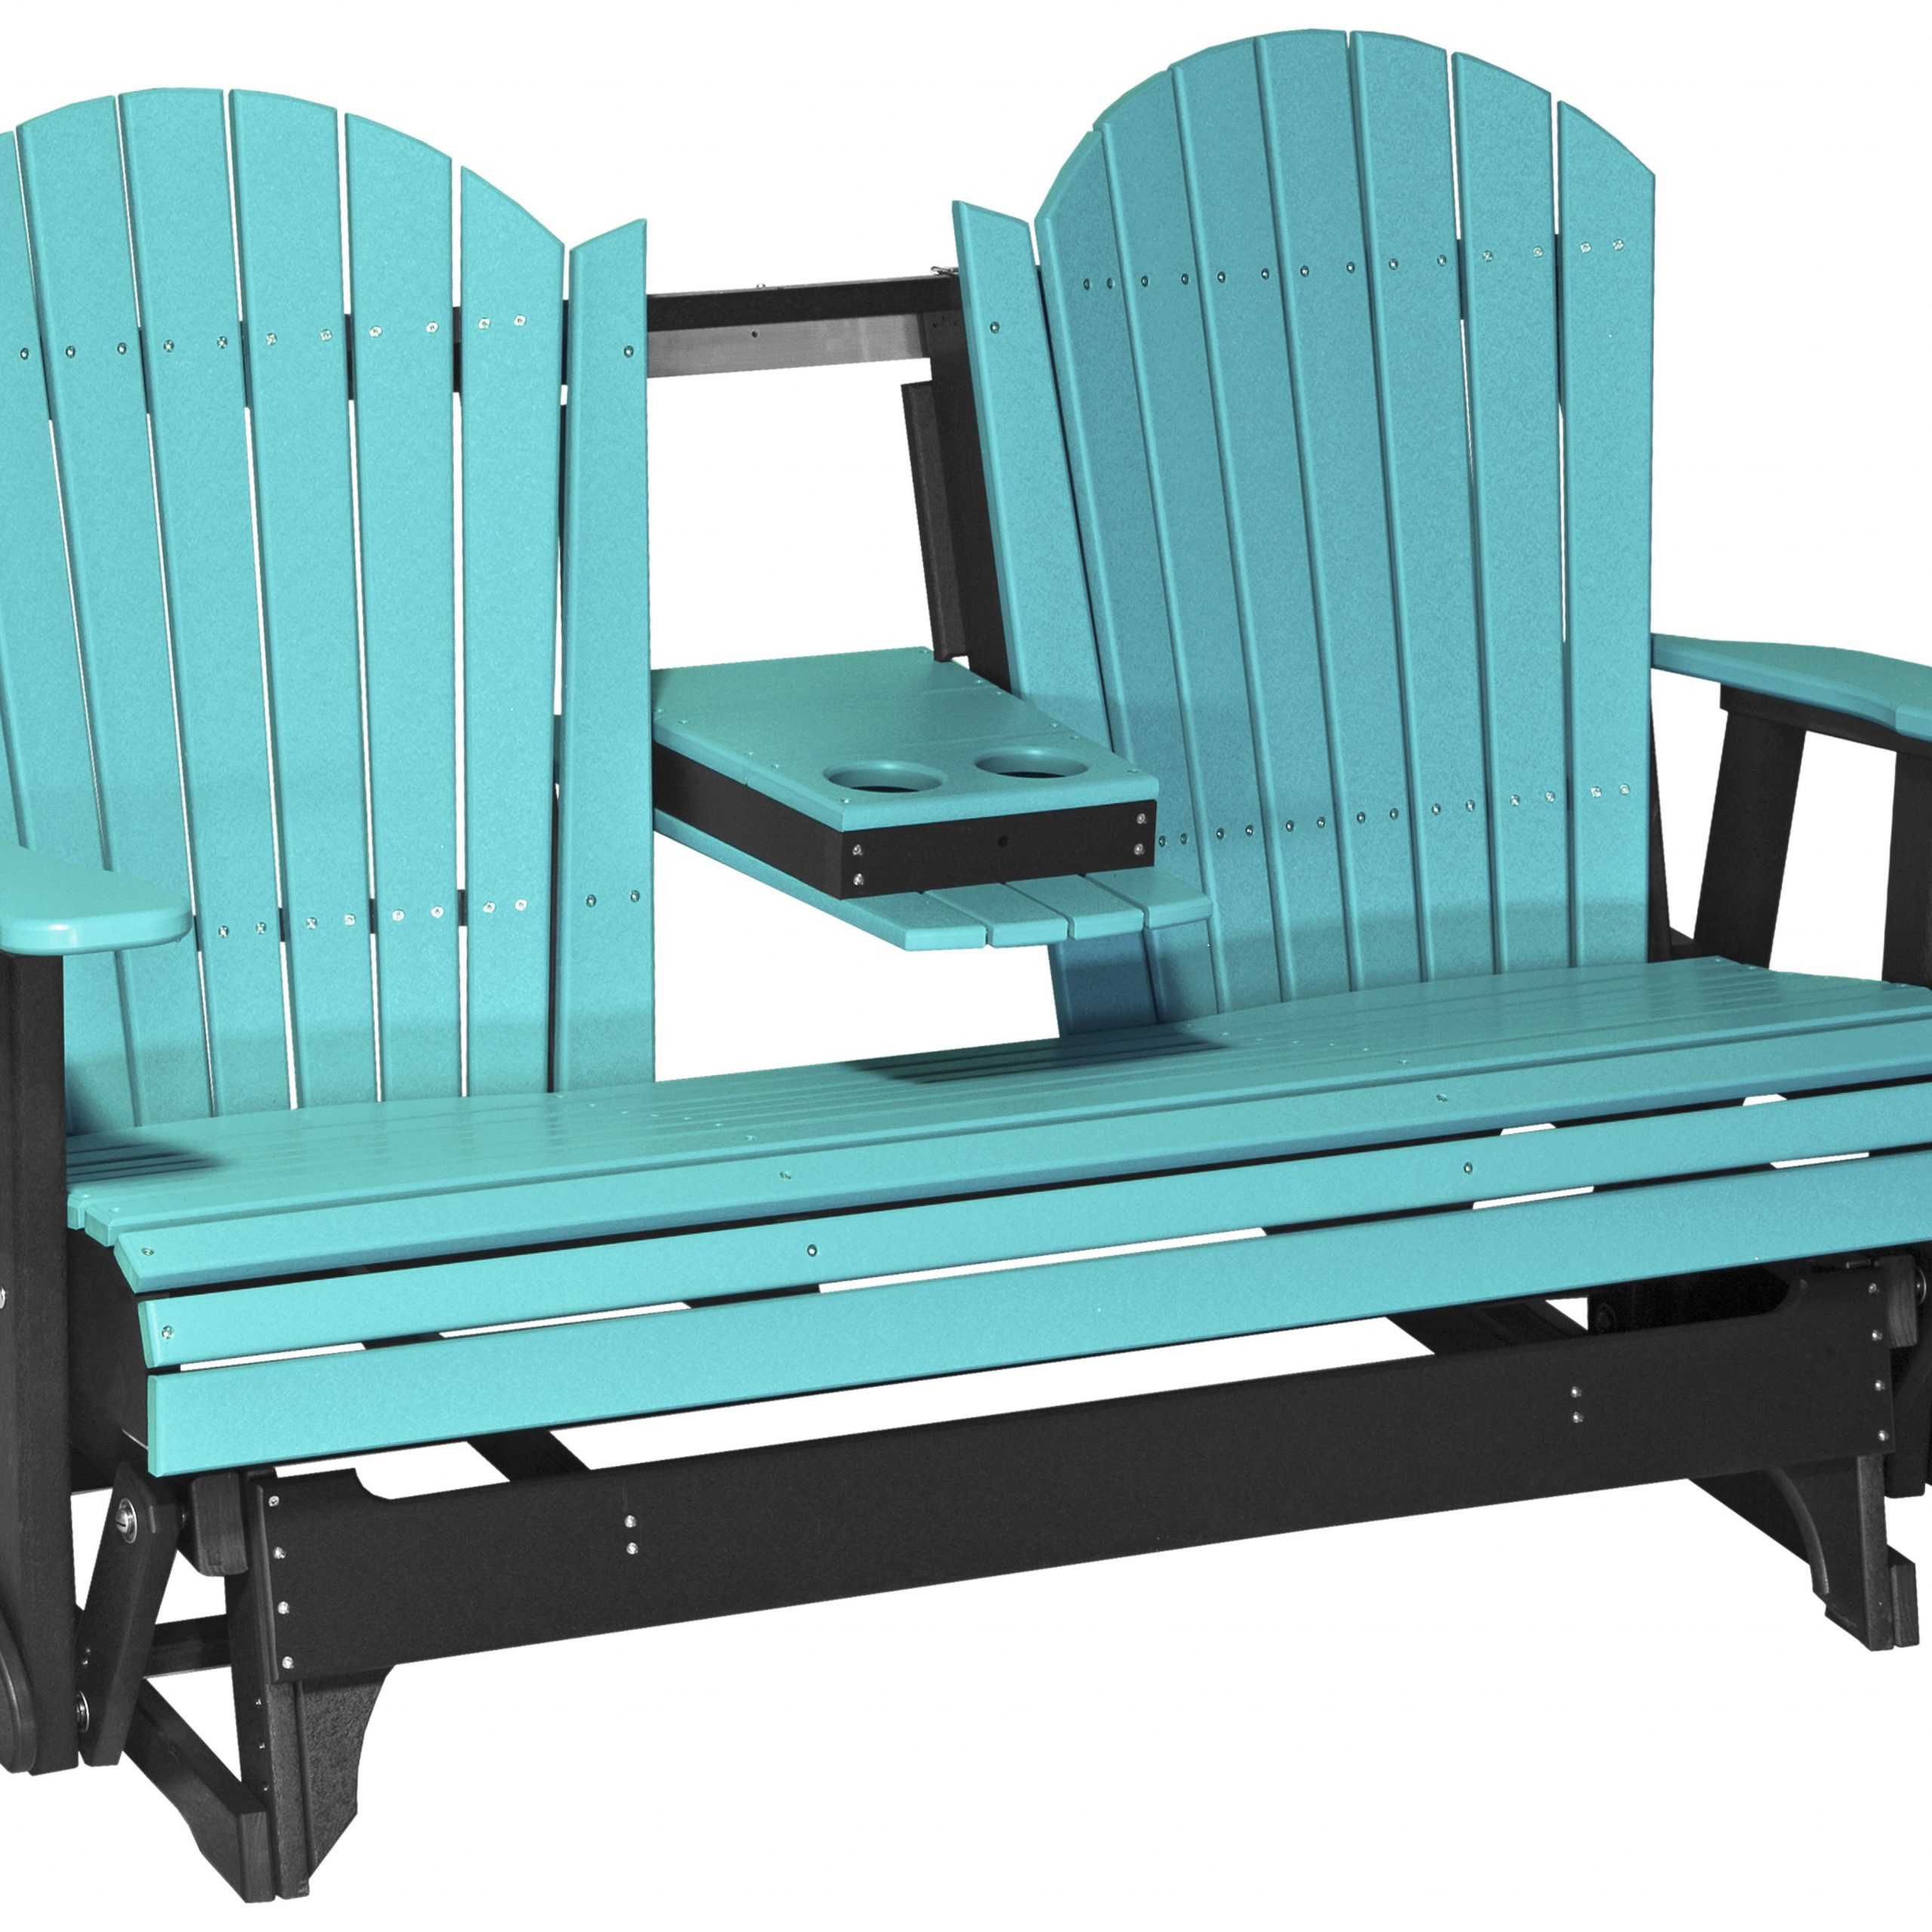 Luxcraft Recycled Plastic 5' Adirondack Glider Loveseat Inside Classic Adirondack Glider Benches (View 3 of 25)